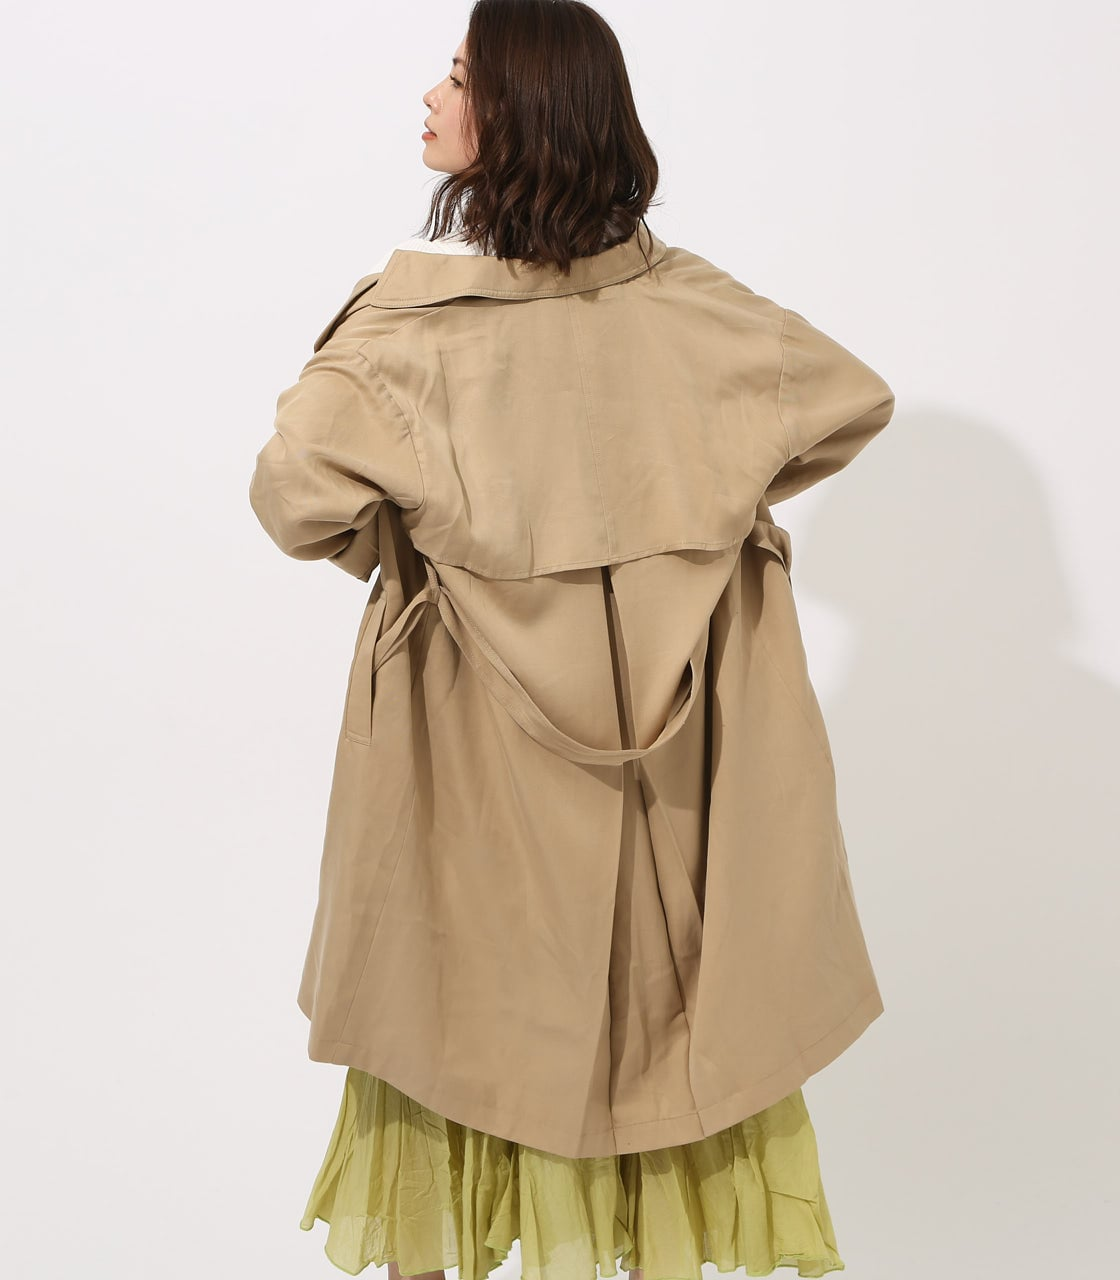 LYOCELL TRENCH COAT 【MOOK49掲載 90015】 詳細画像 BEG 3